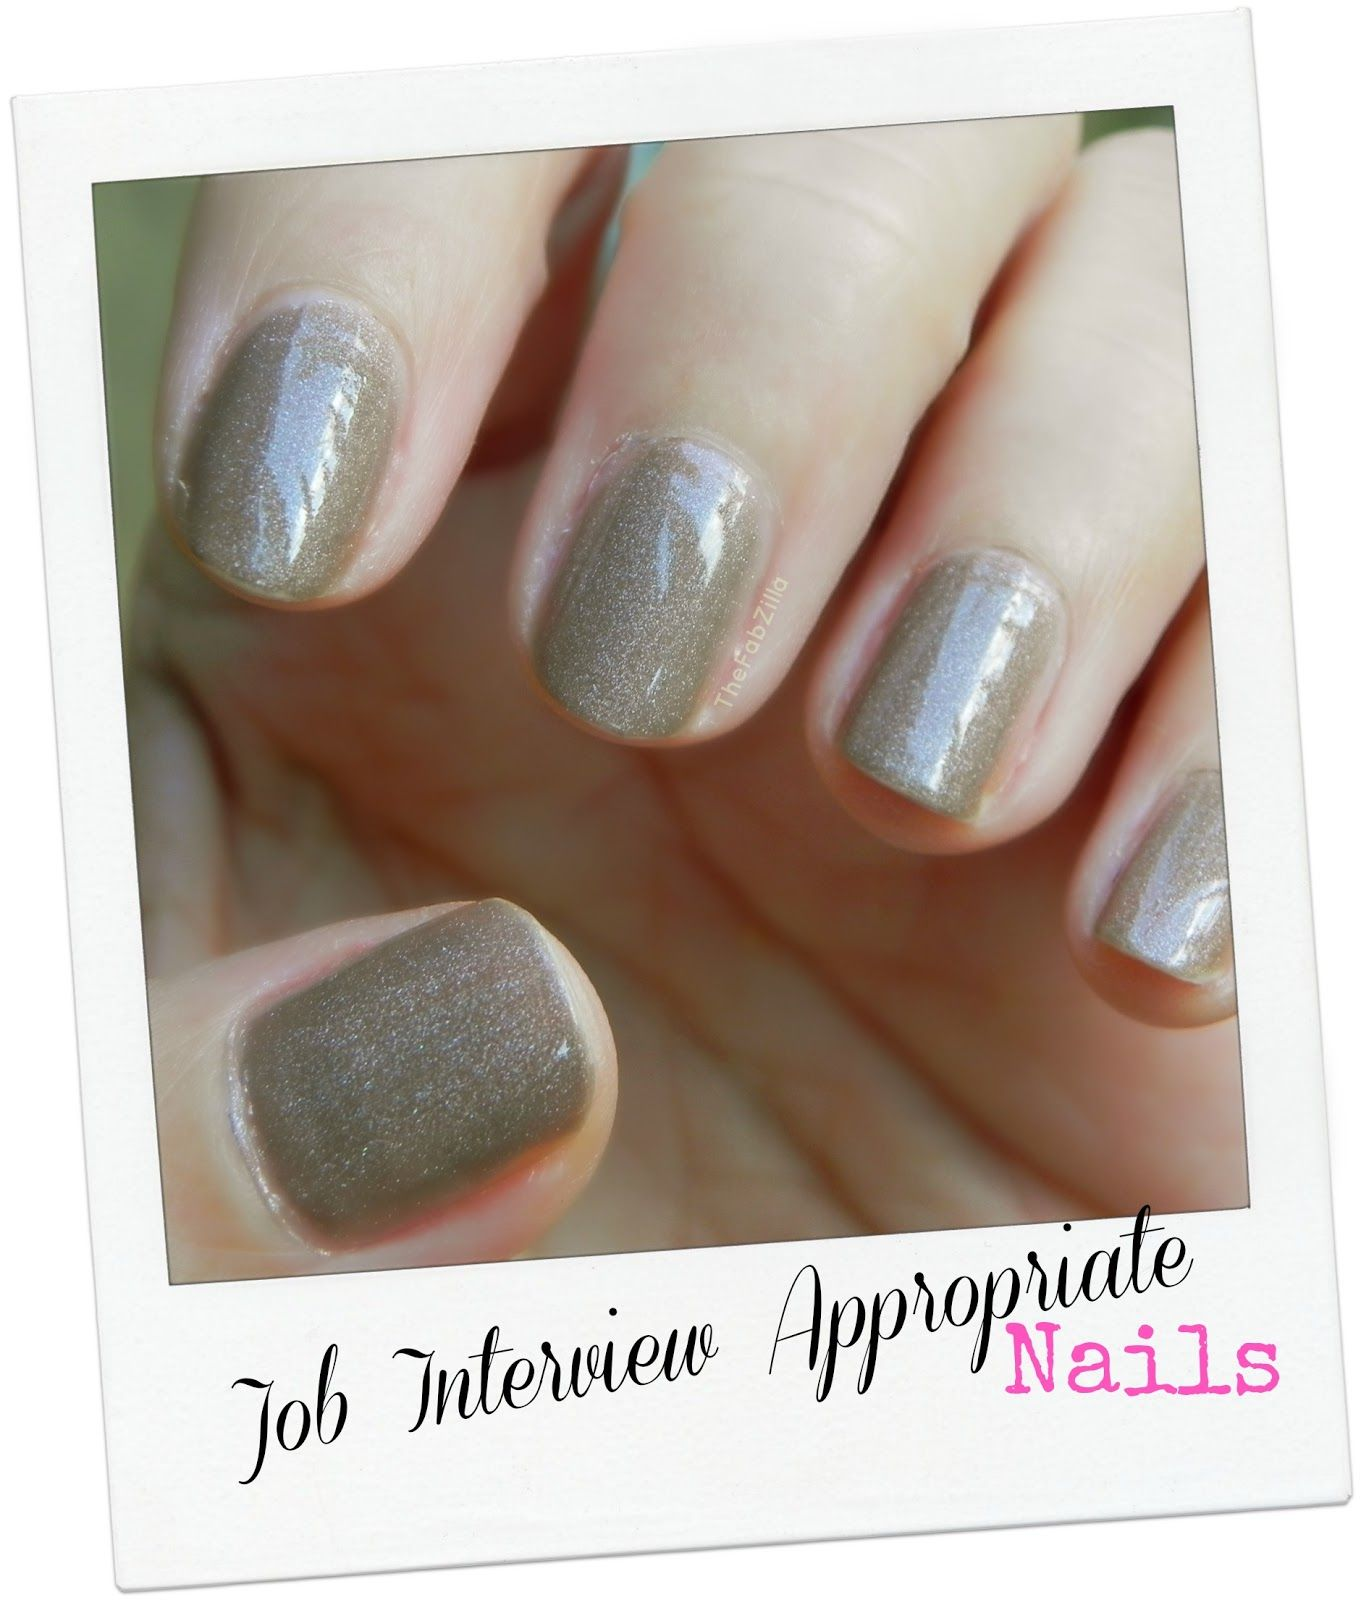 theFABZILLA.com: Job Interview Appropriate Nails | Makeup & Nails ...